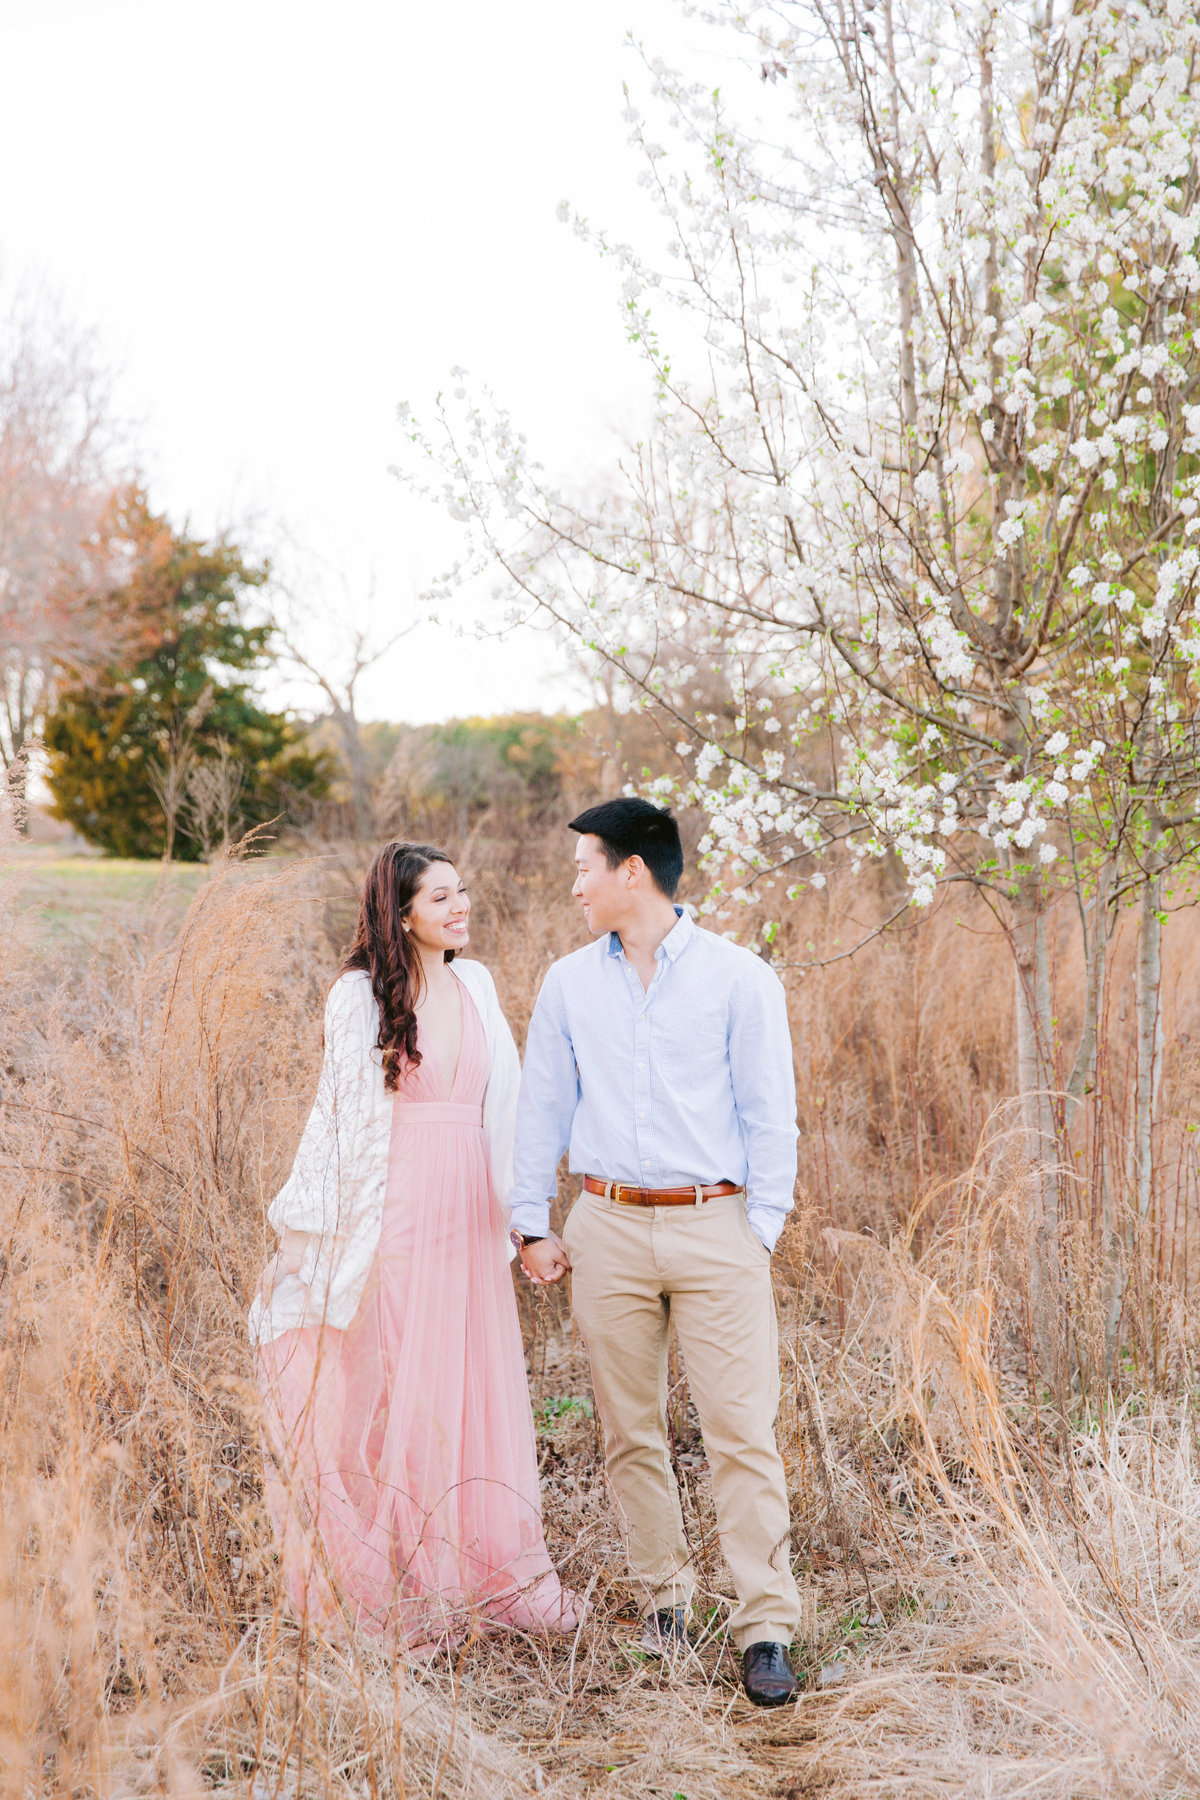 Haily+Jesse Engagement Sneak Peek 0010